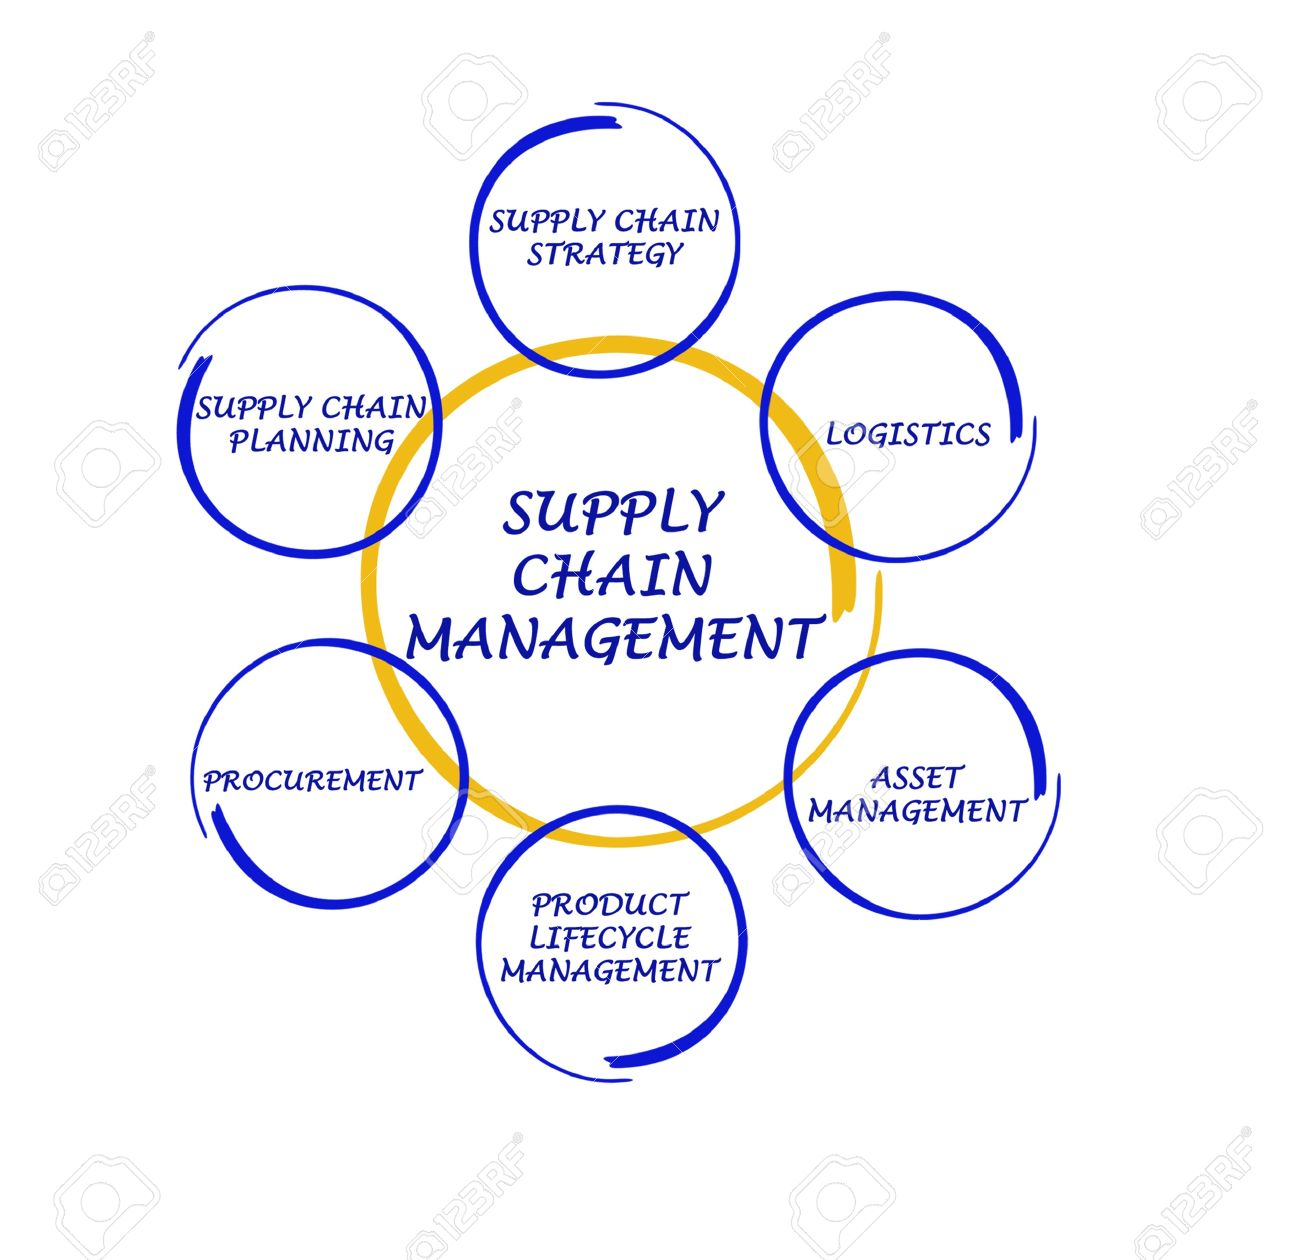 supply chain management stock photo picture and royalty free image Supply Chain Management Clip Art stock photo supply chain management